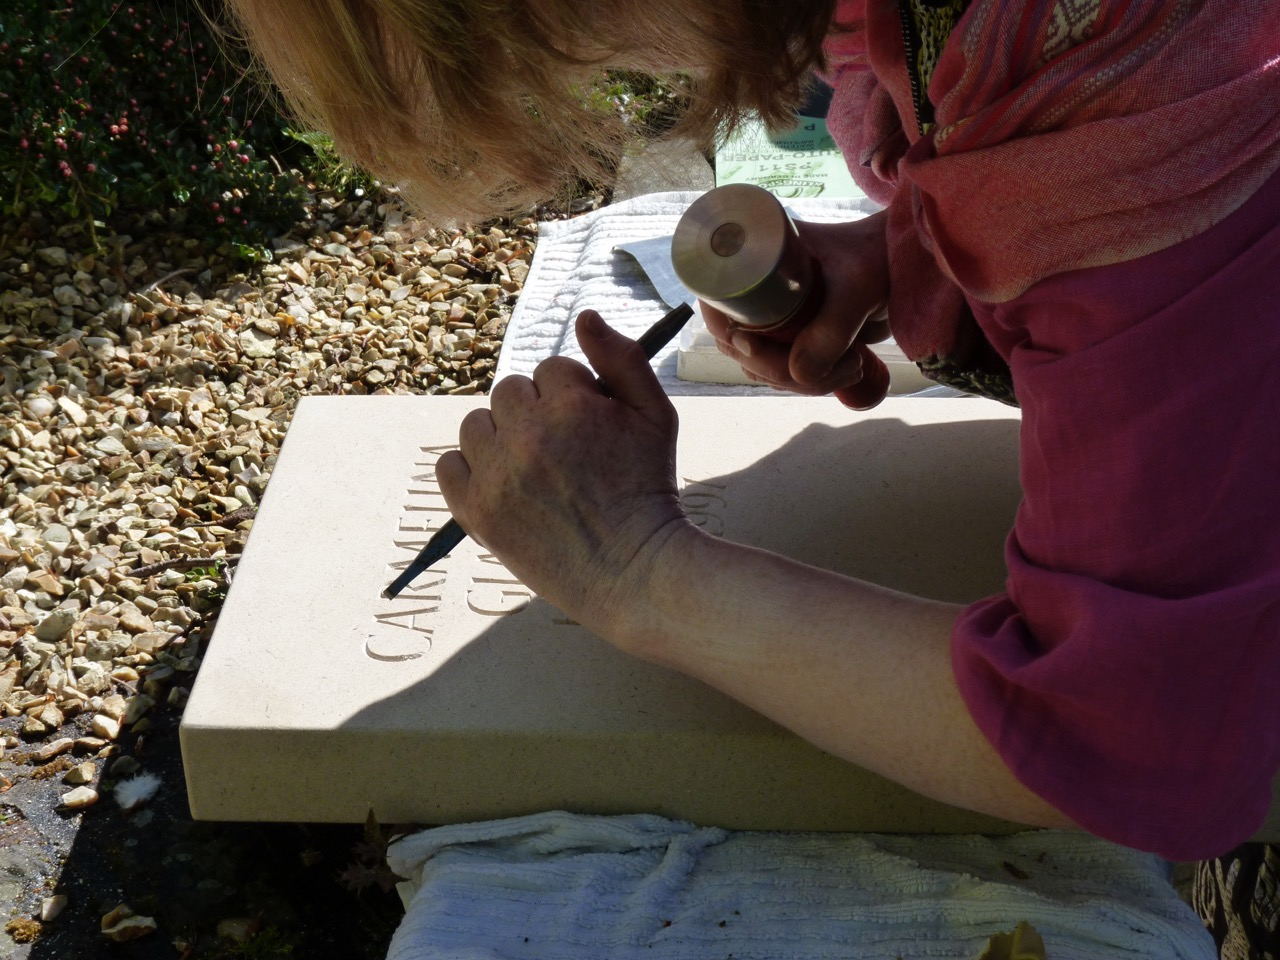 Working on a headstone, letters being carved in York stone.